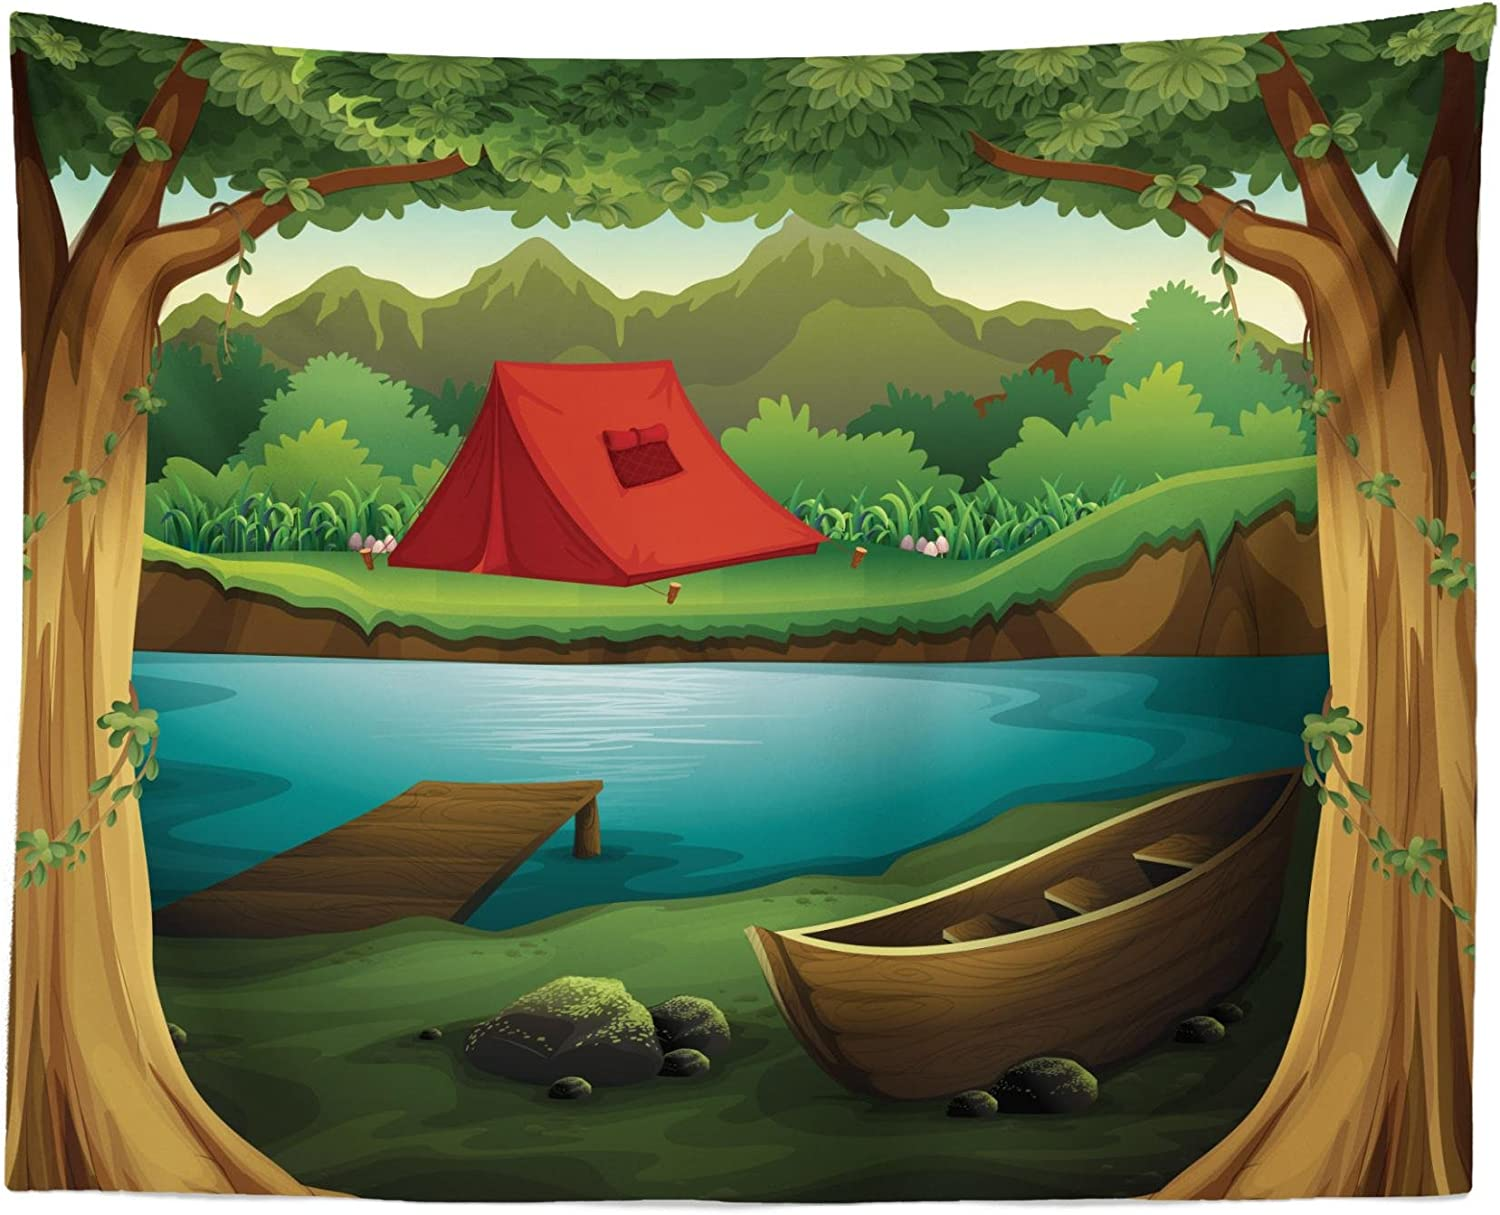 """Lunarable Camping Tapestry, Idyllic Nature Scene of a Deep Forest with Lake and Mountains Cartoon Woodland, Fabric Wall Hanging Decor for Bedroom Living Room Dorm, 28"""" X 23"""", Brown Green"""